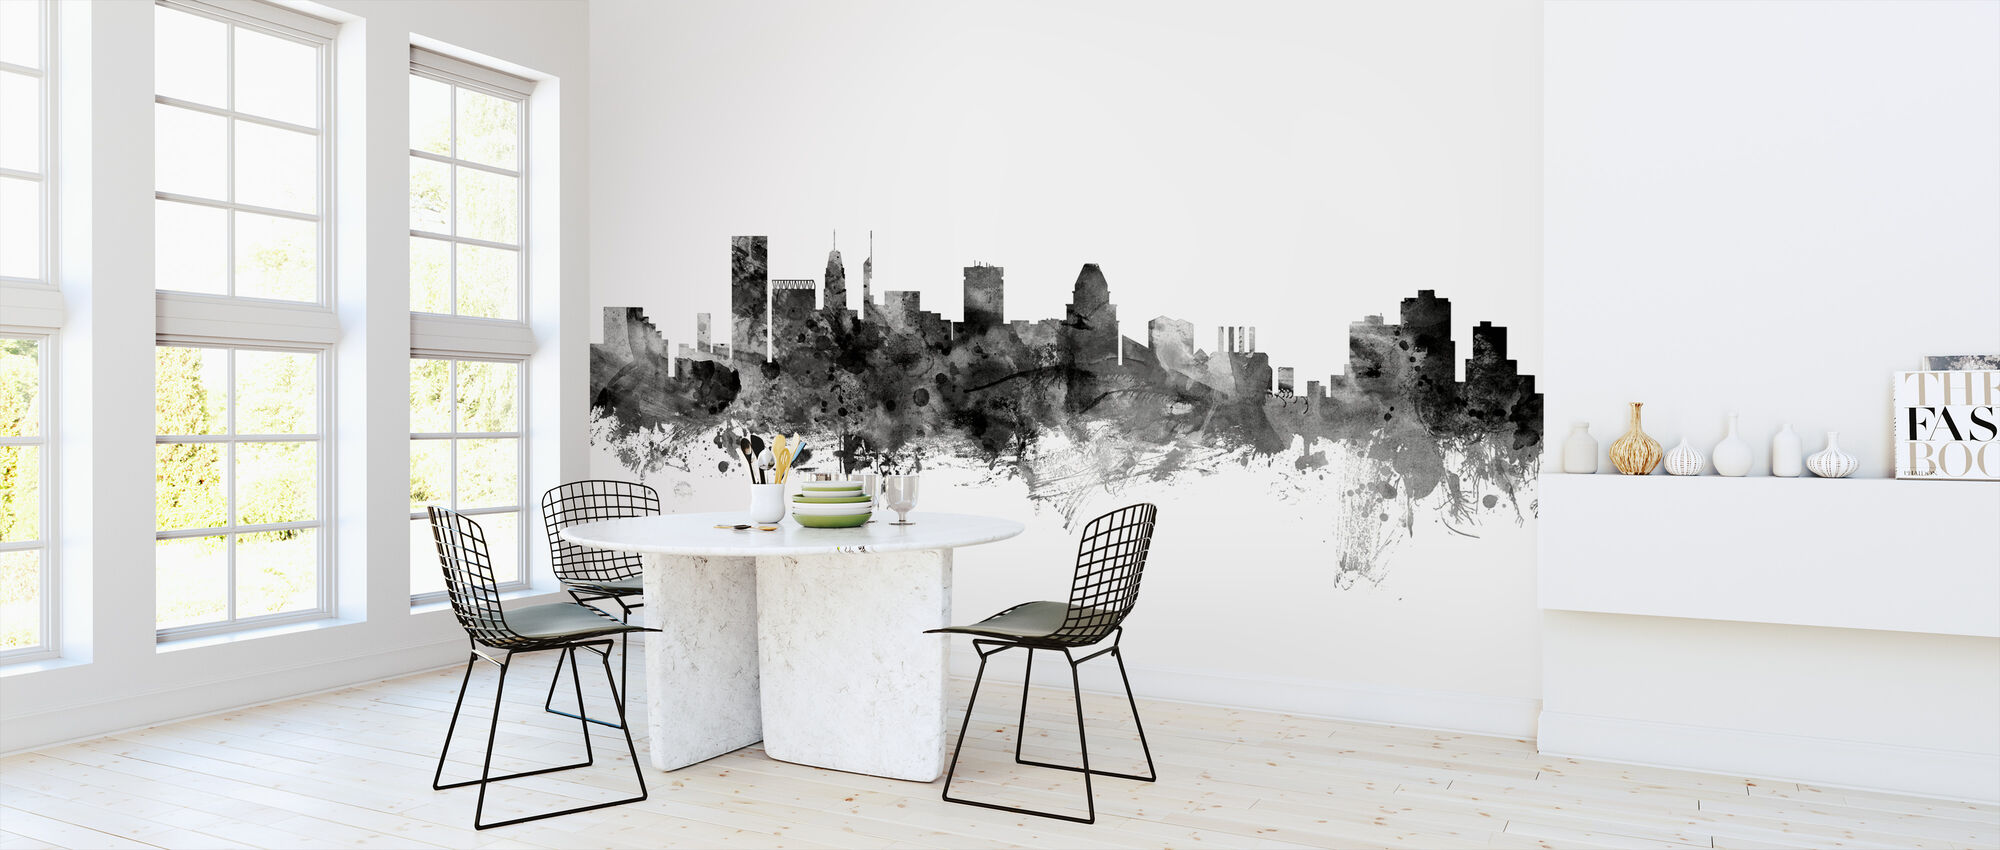 Baltimore Maryland Skyline Black - Wallpaper - Kitchen